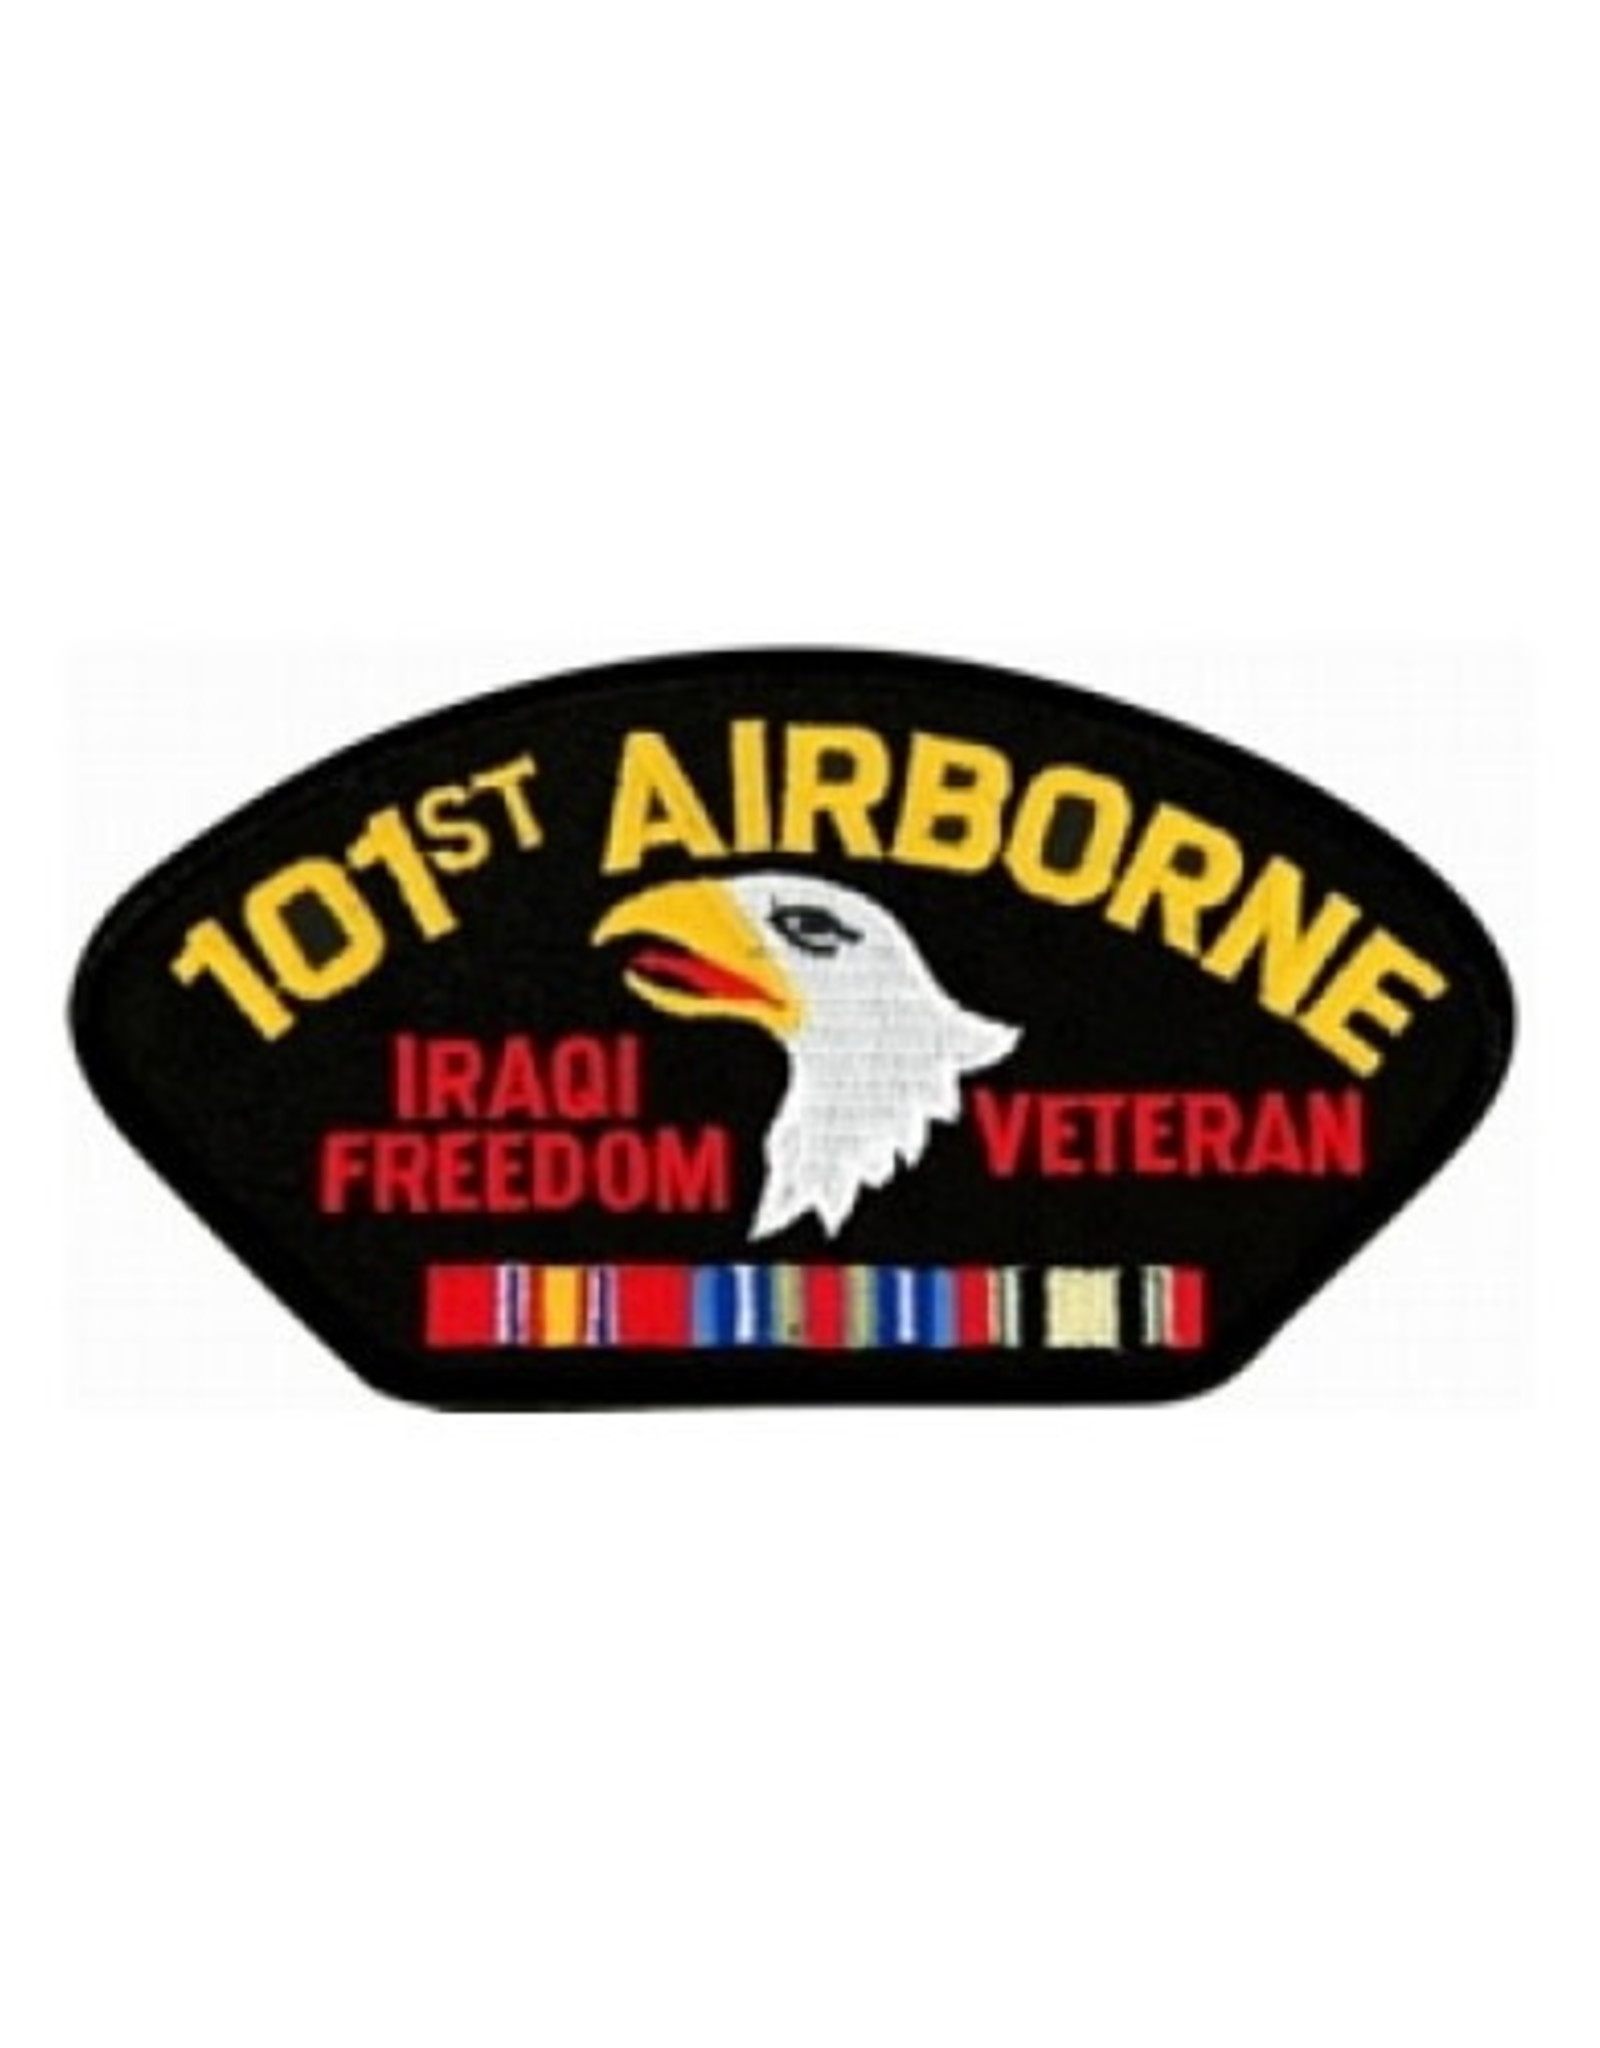 """MidMil Embroidered Army 101st Airborne Division Iraqi Freedom Veteran Patch  with Emblem and Ribbons 5.2"""" wide x 2.7"""" high Black"""